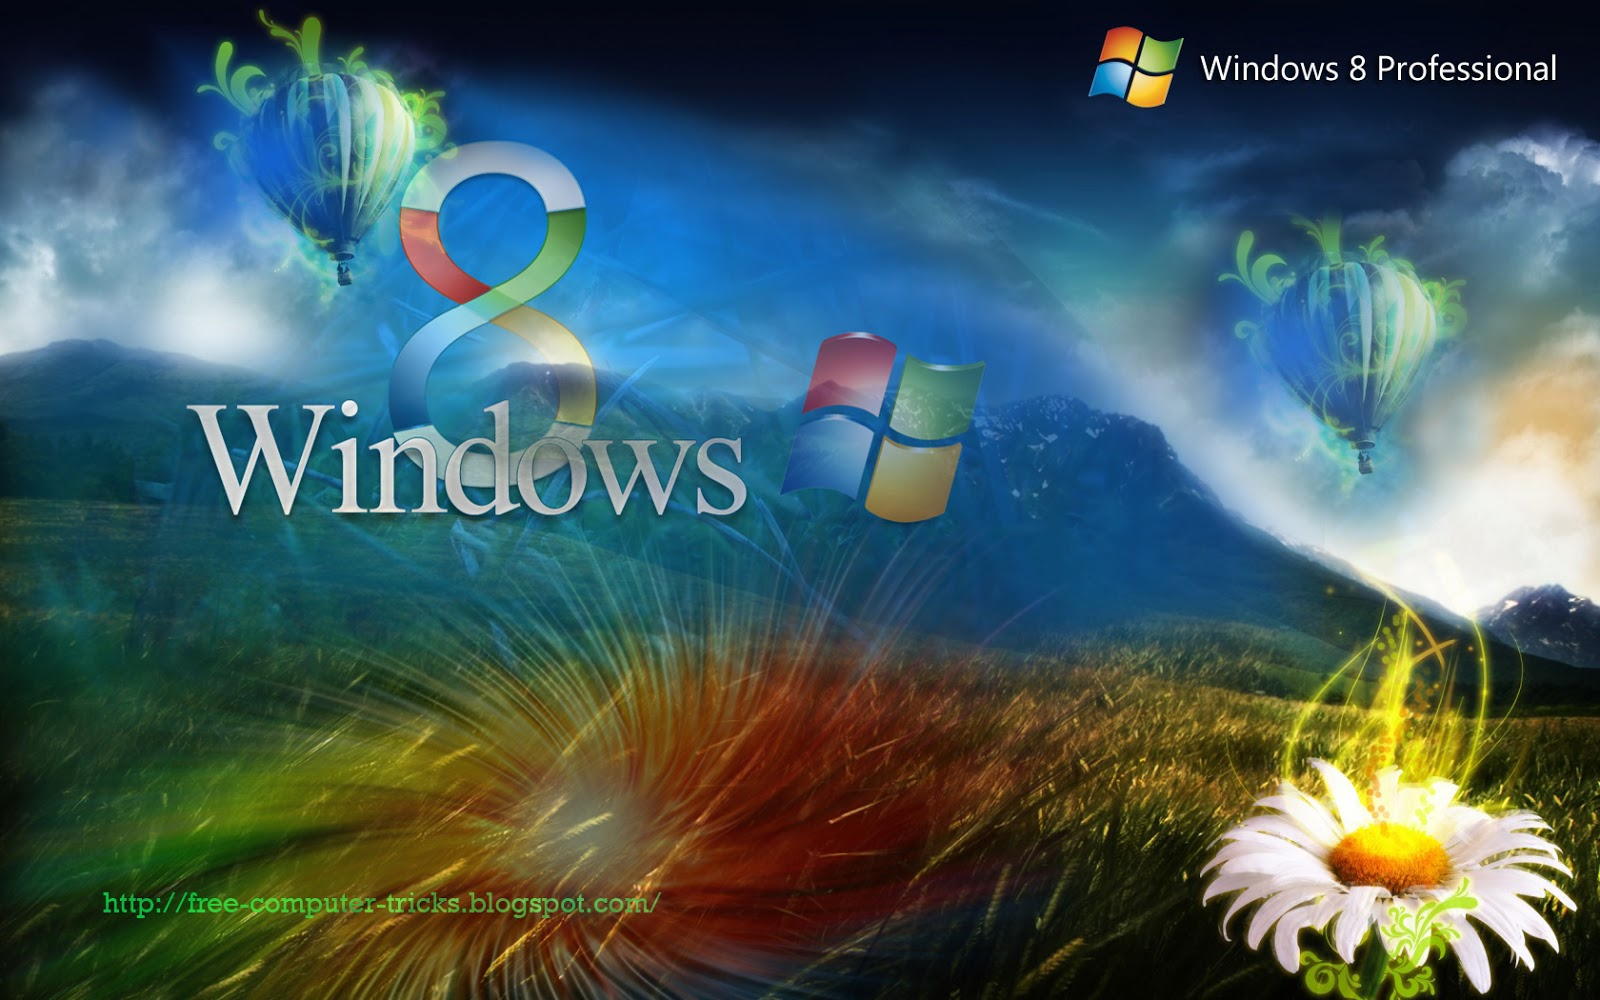 Unduh 5400 Koleksi Wallpaper Desktop Bergerak Windows 7 Gratis